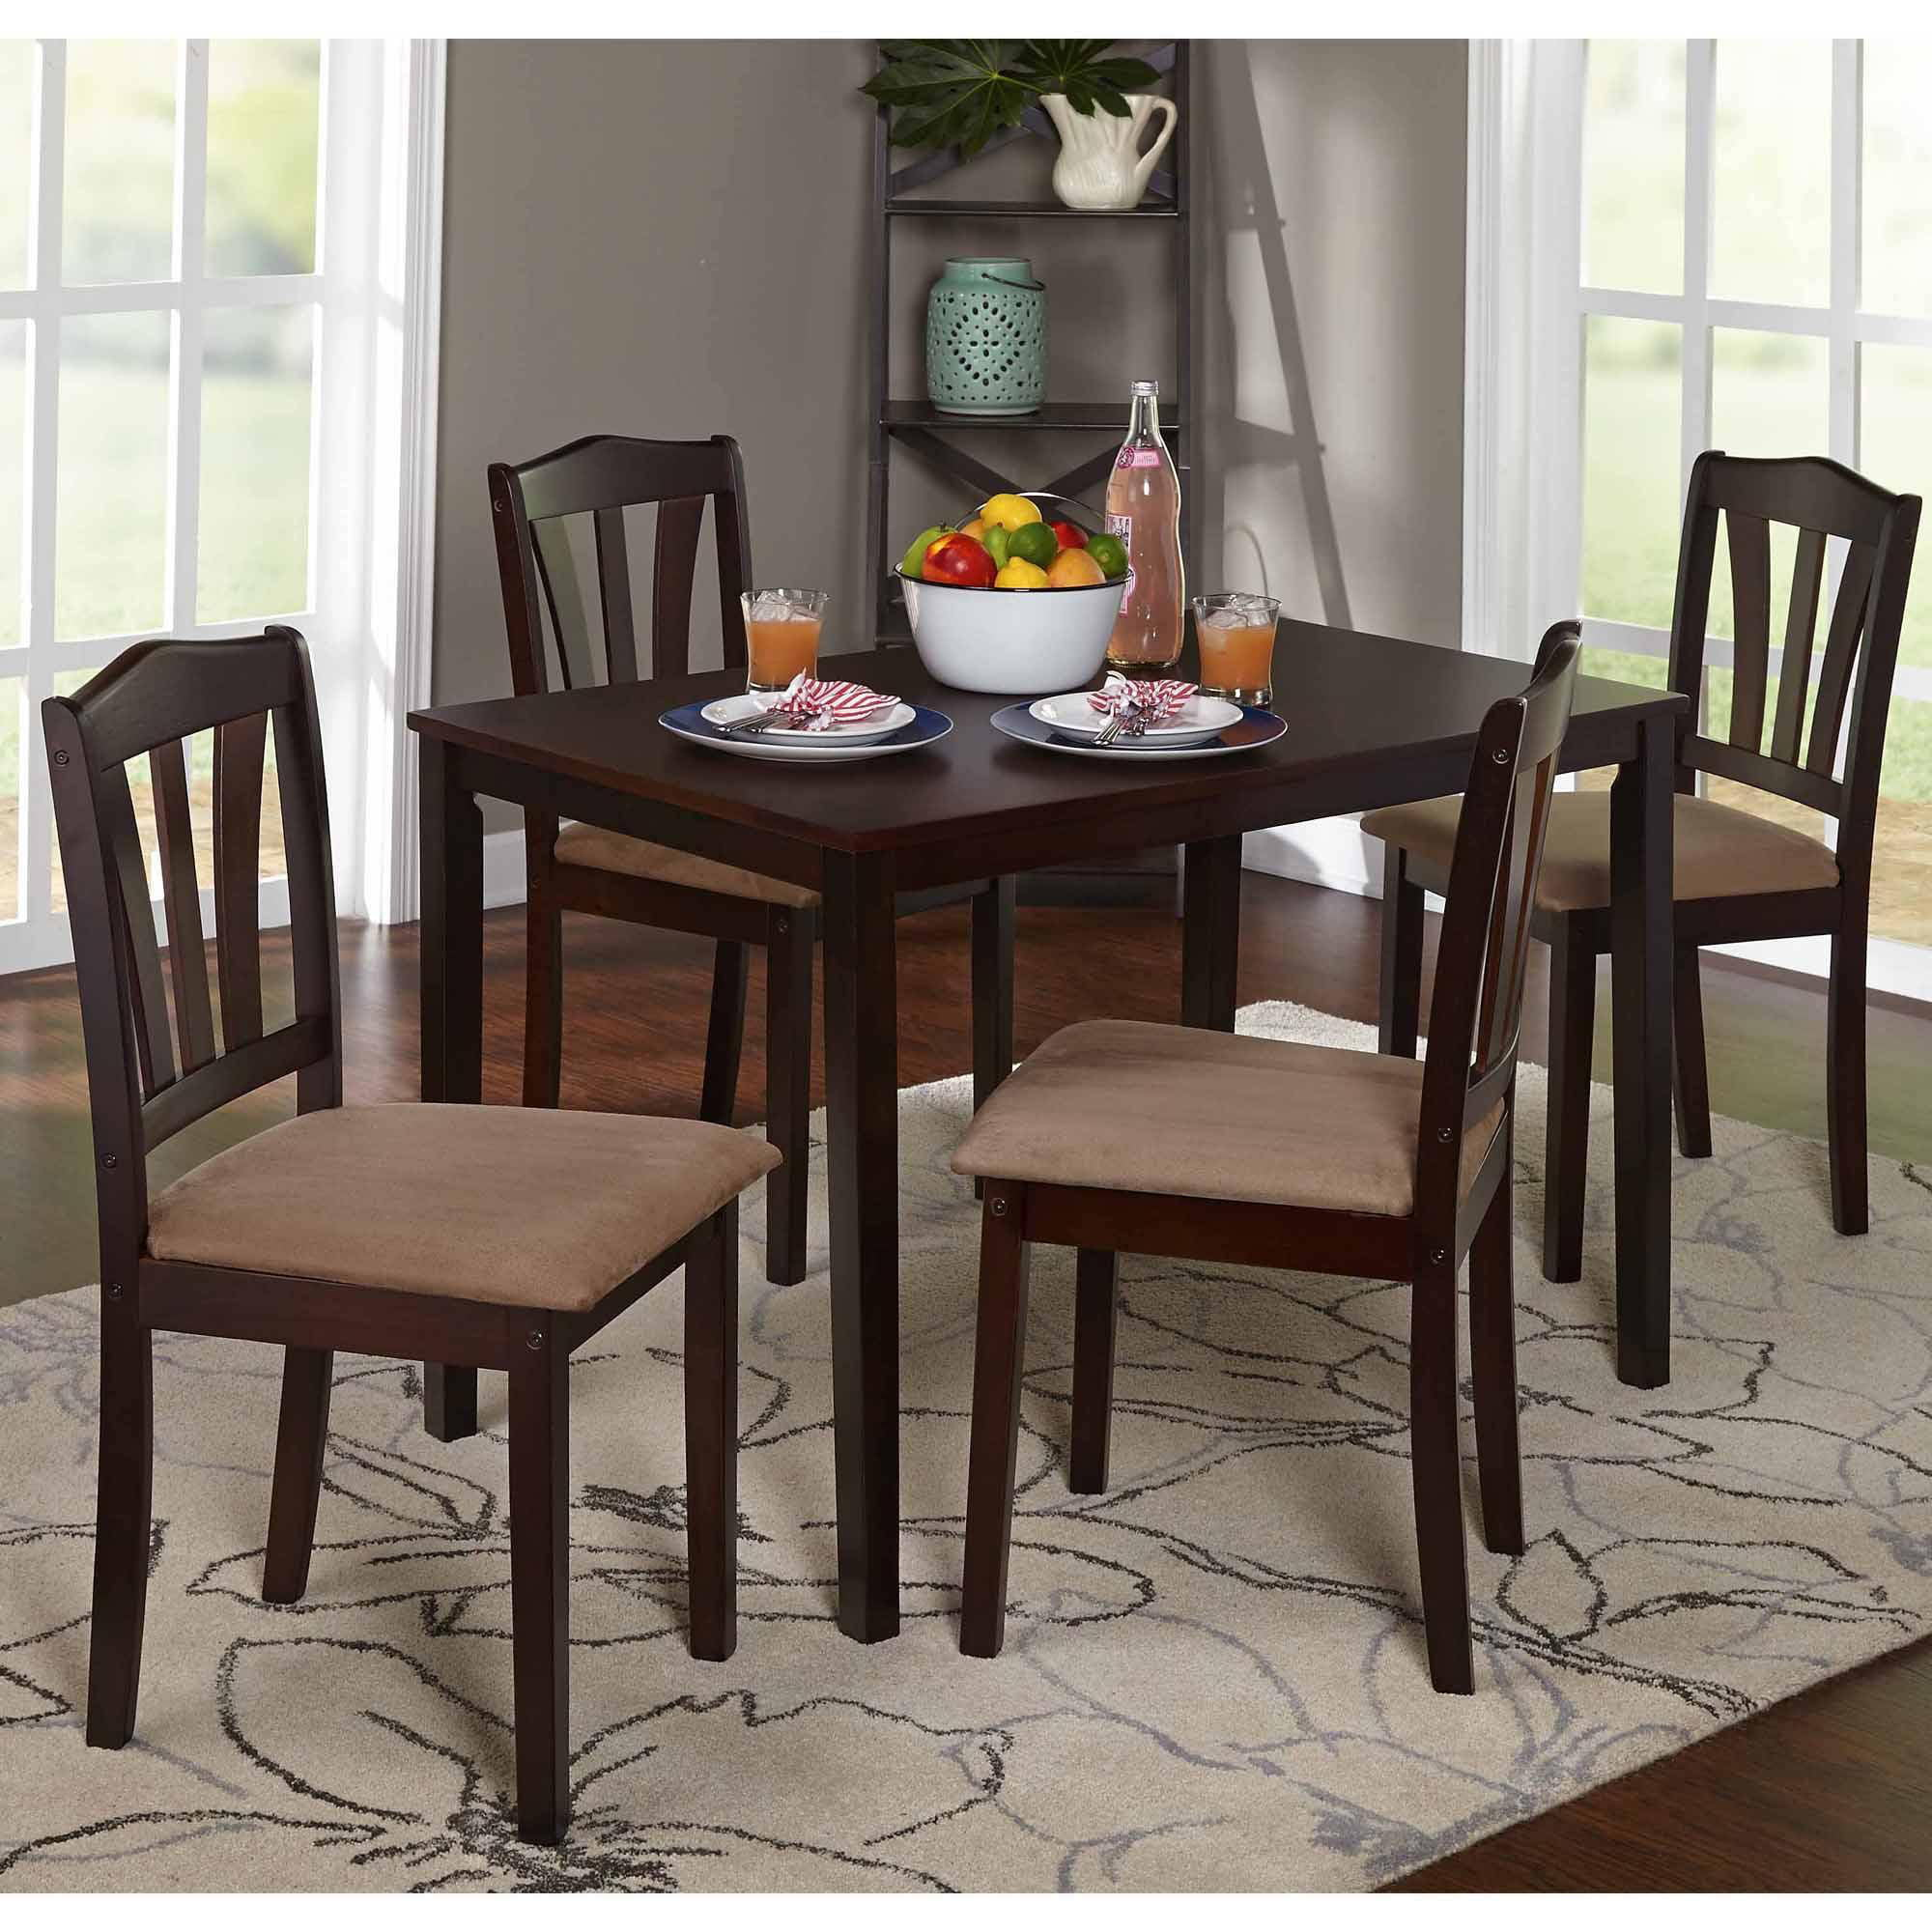 set of chairs go chair accessories mainstays wesley creek 3 piece outdoor bistro with swivel walmart com